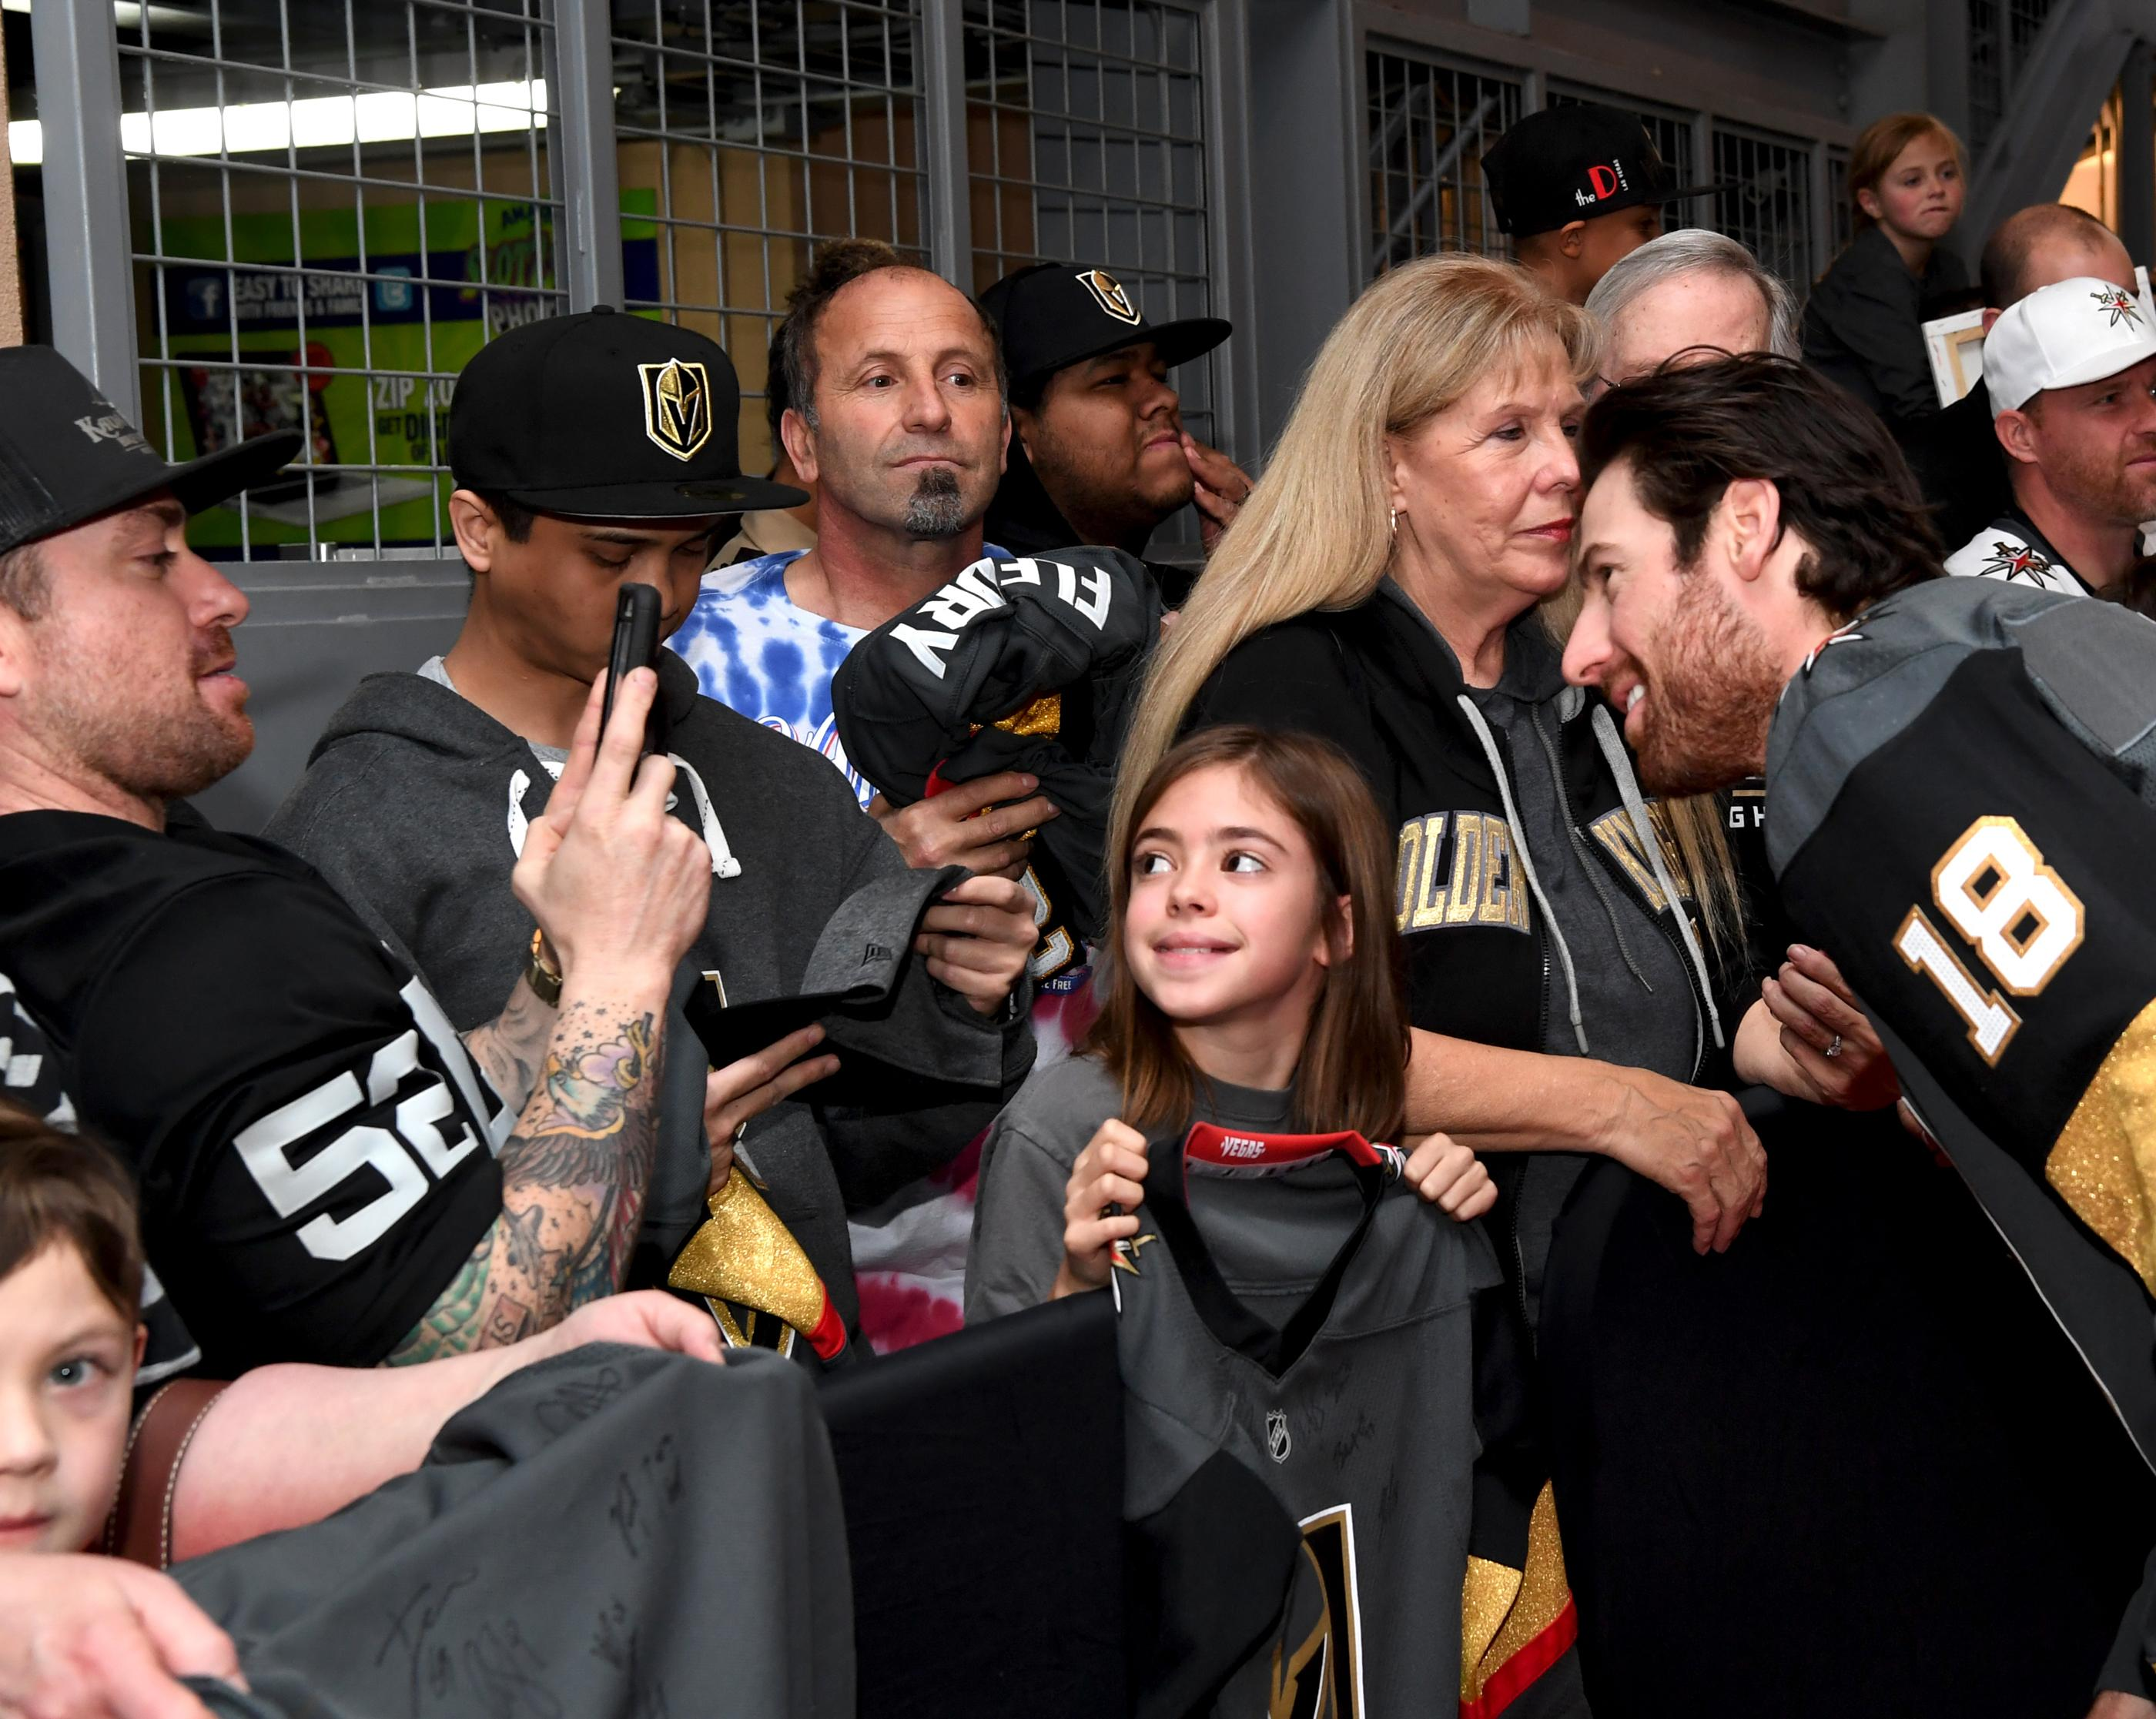 The Golden Knights host a Fan Fest with the D Las Vegas and Fremont Street Experience. Las Vegas Golden Knights player James Neal poses for a photo with a young fan at Fremont Street Experience. Sunday, January 14, 2017. CREDIT: Glenn Pinkerton/Las Vegas News Bureau